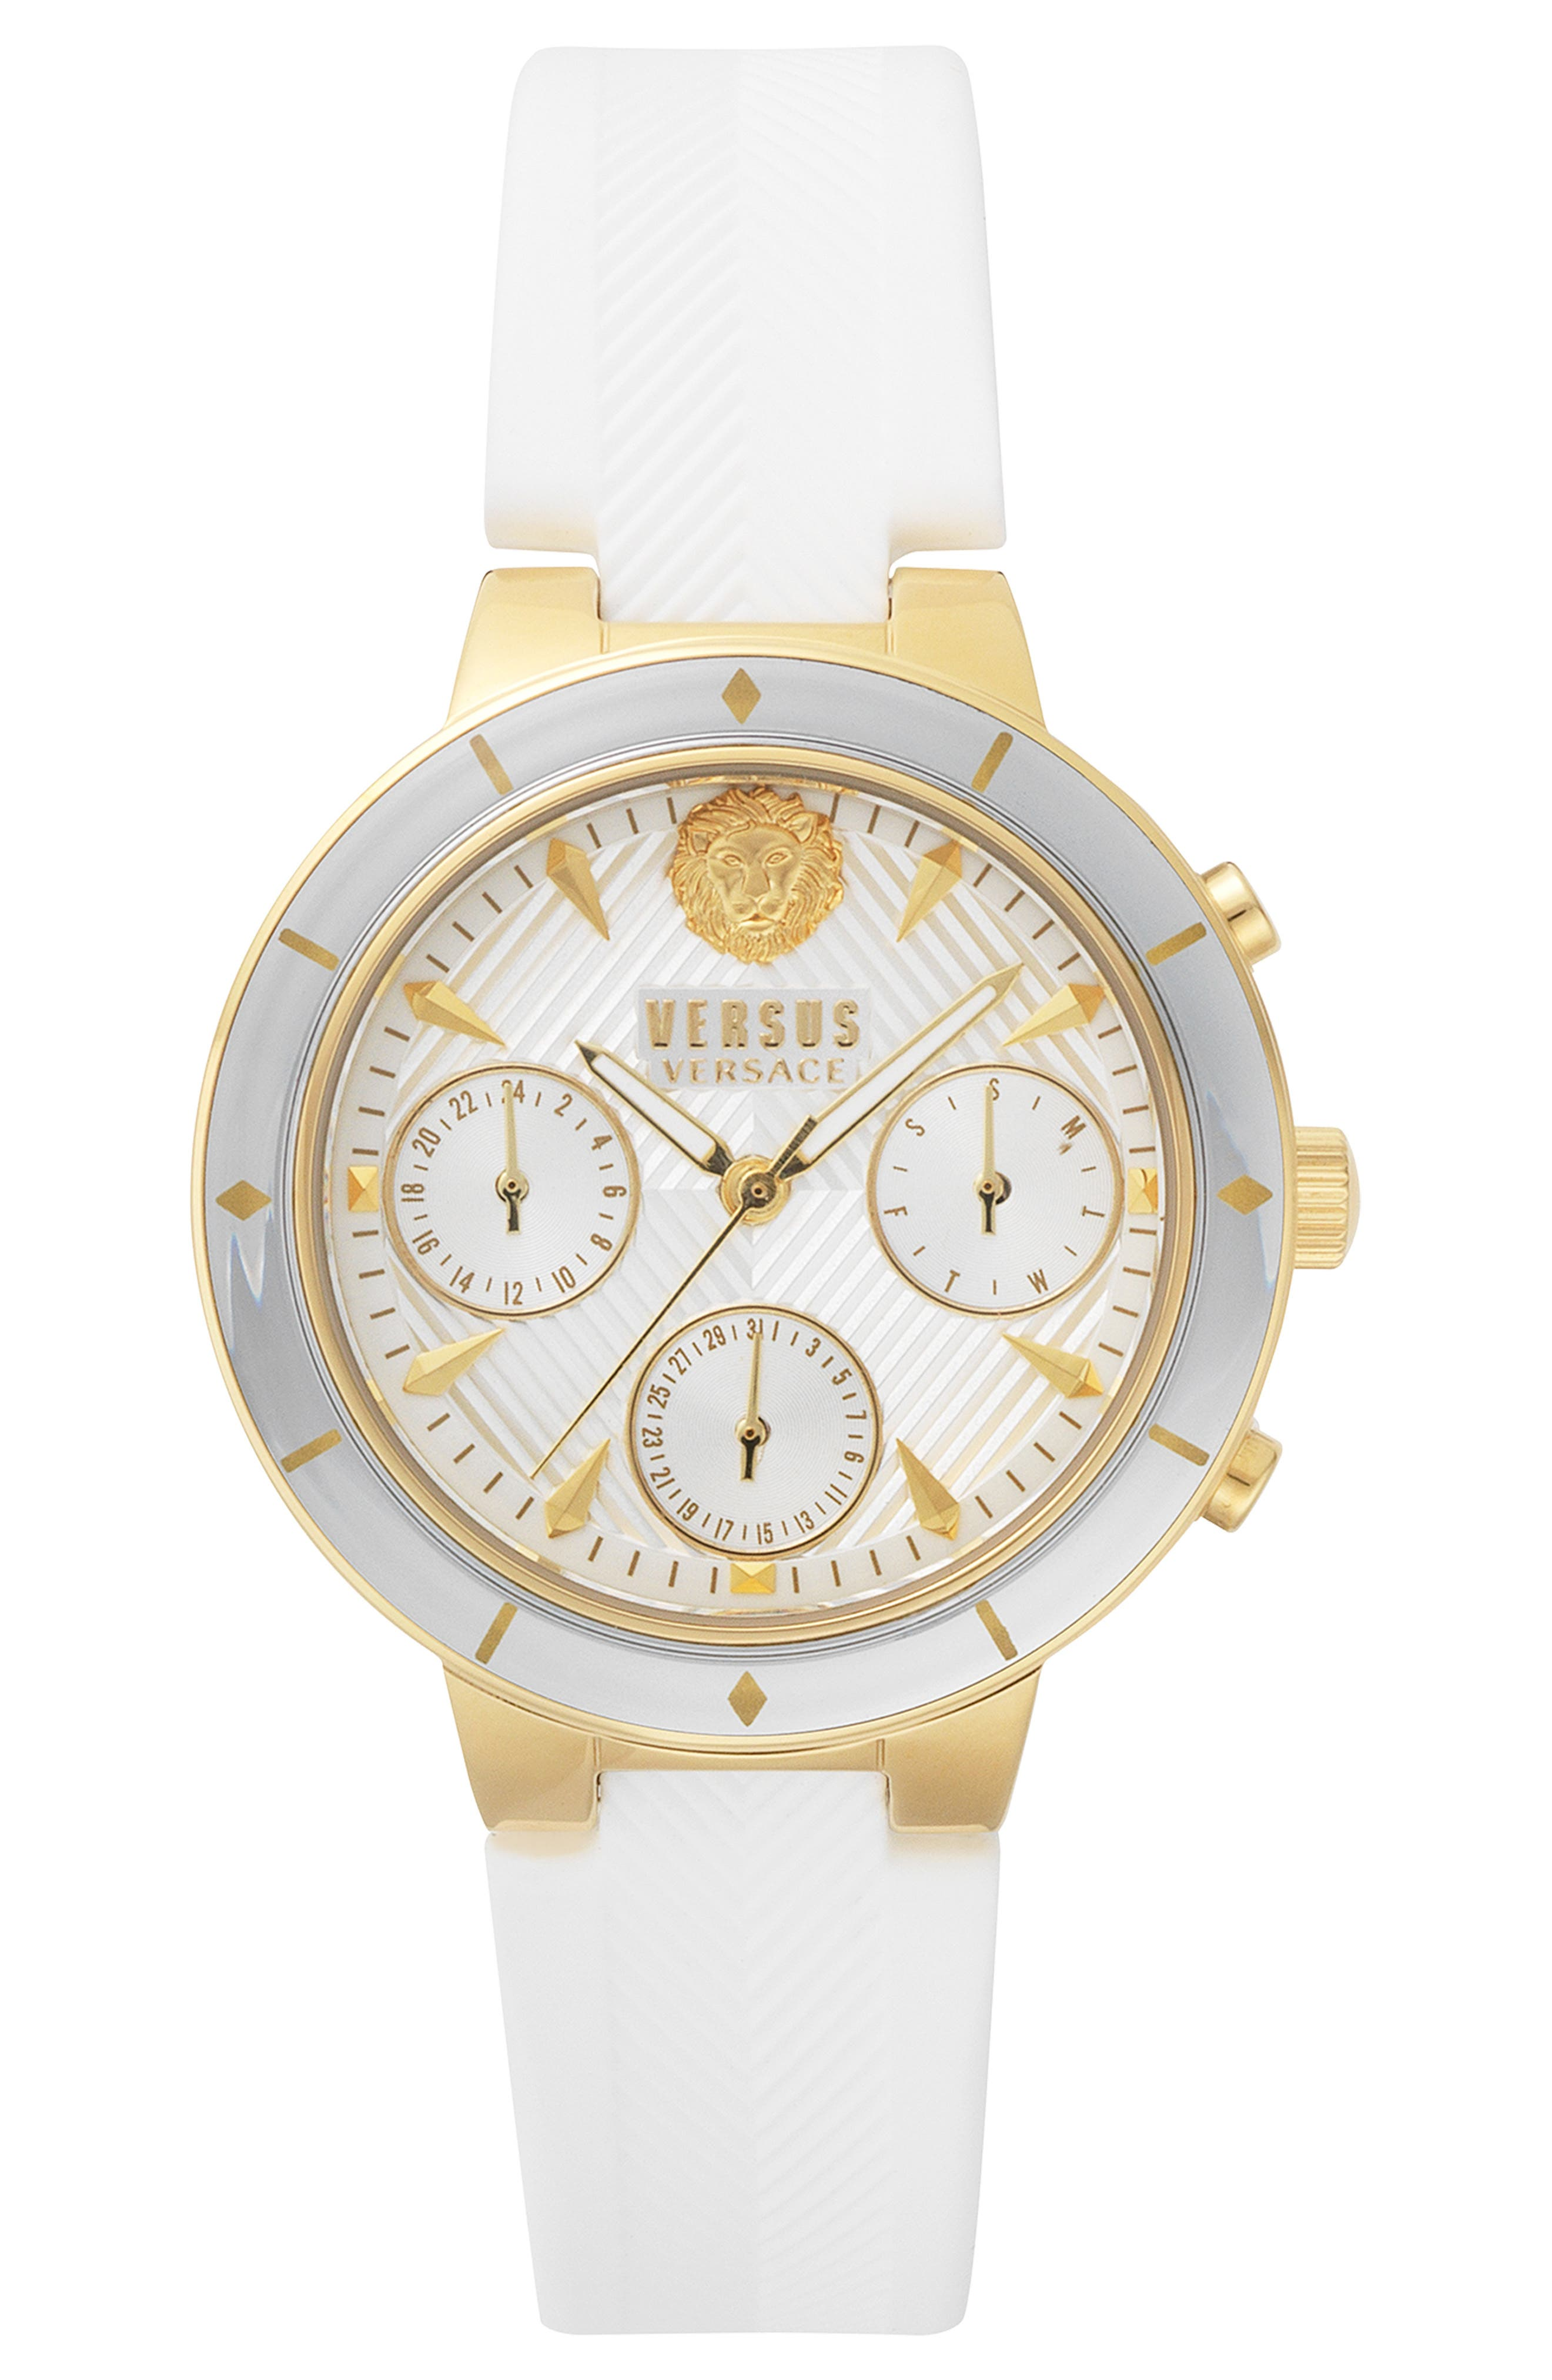 VERSUS VERSACE, Harbour Heights Silicone Strap Watch, 38mm, Main thumbnail 1, color, WHITE/ GOLD